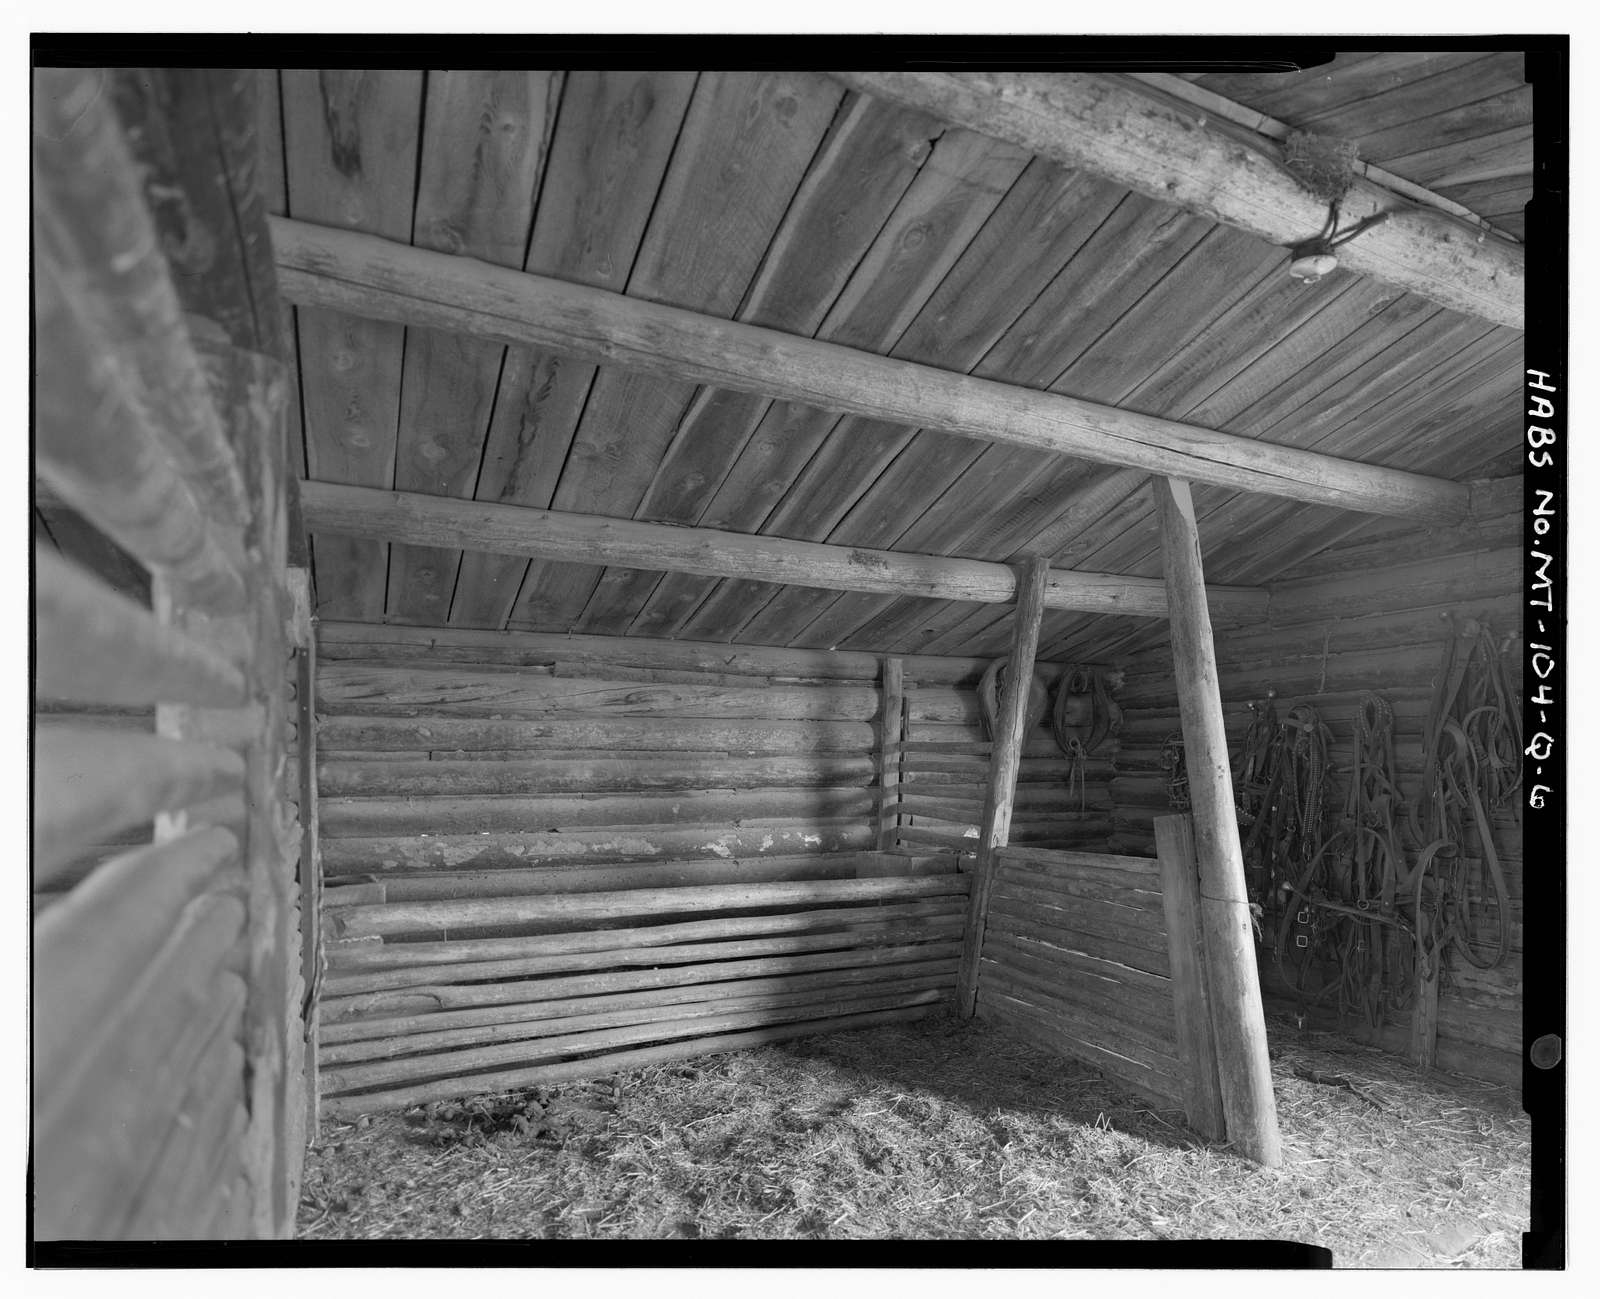 William & Lucina Bowe Ranch, Log Draft Horse Barn, 290 feet southwest of House, Melrose, Silver Bow County, MT